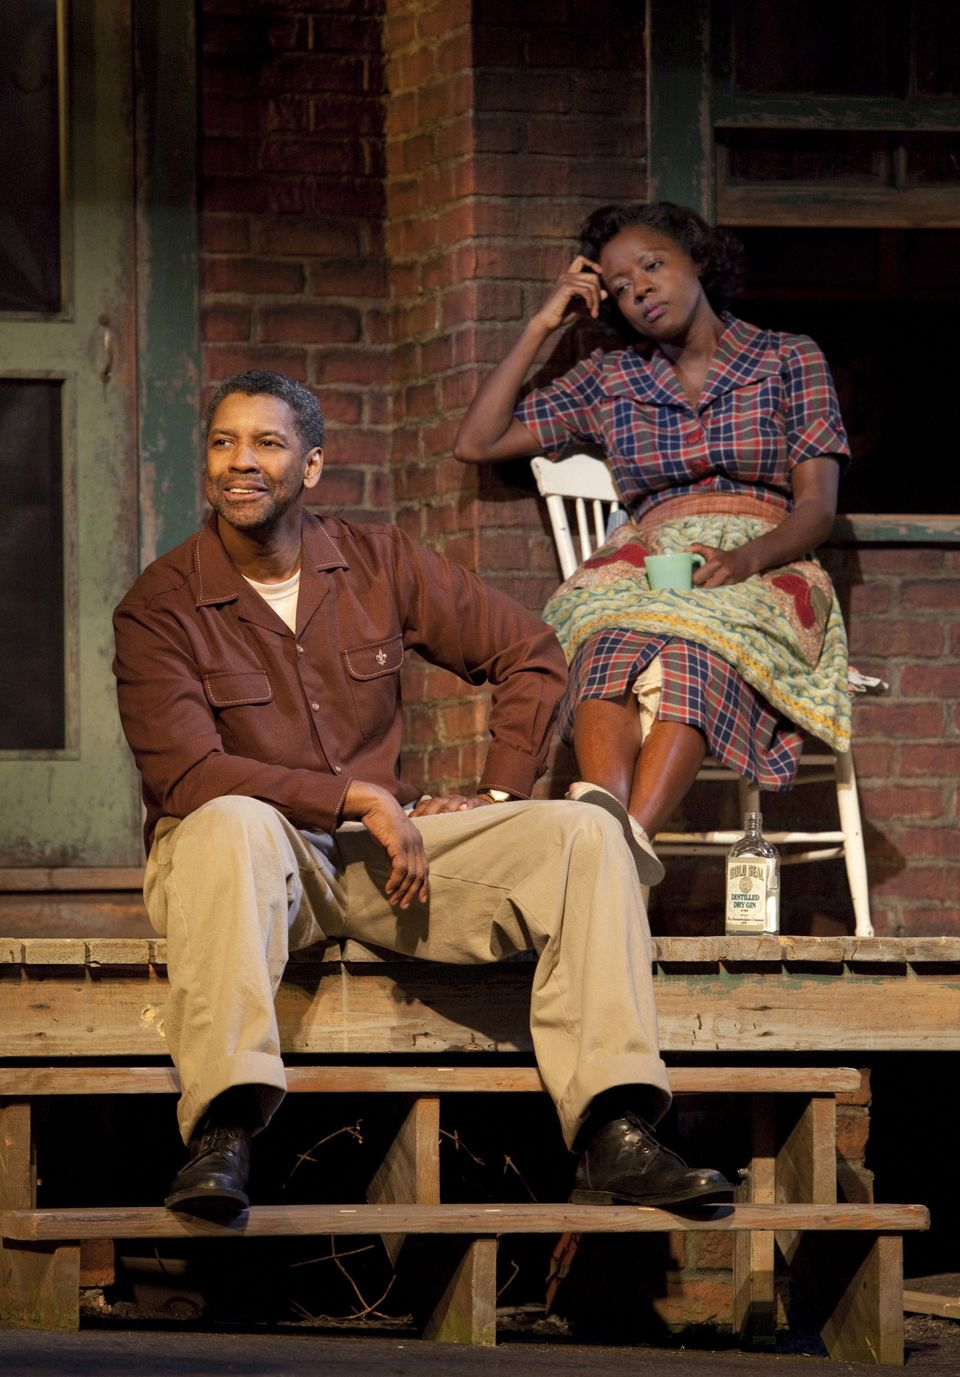 fences play by august wilson review Movie review  fences, the film adaptation of the pulitzer prize-winning play  by distinguished playwright august wilson, was produced and directed by  denzel washington, who also stars, in the role he played to great.